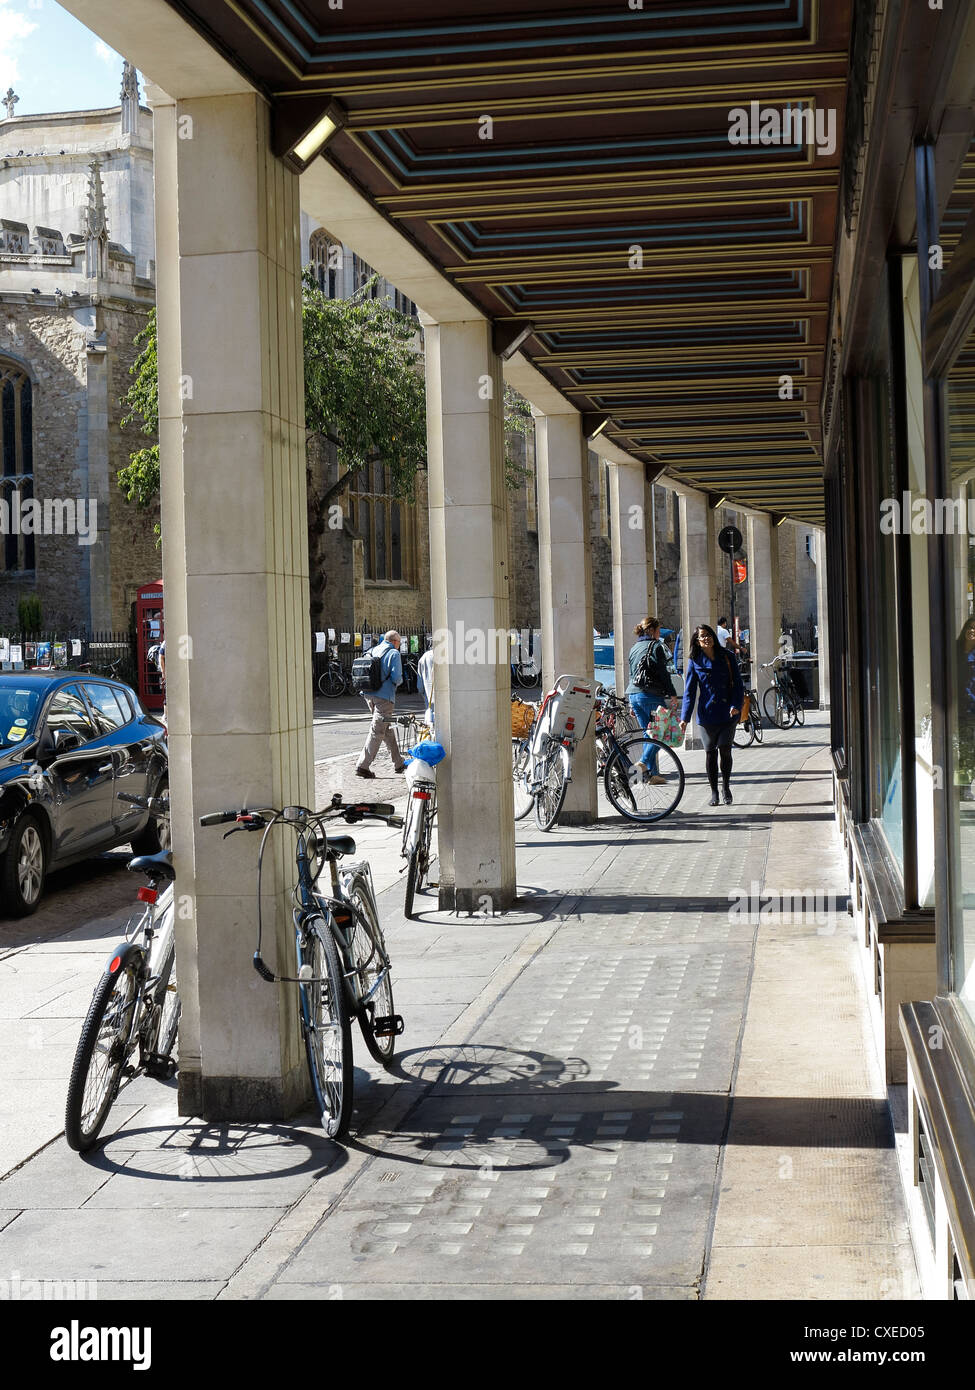 covered-walkway-in-front-of-small-shopping-parade-cambridge-city-CXED05.jpg